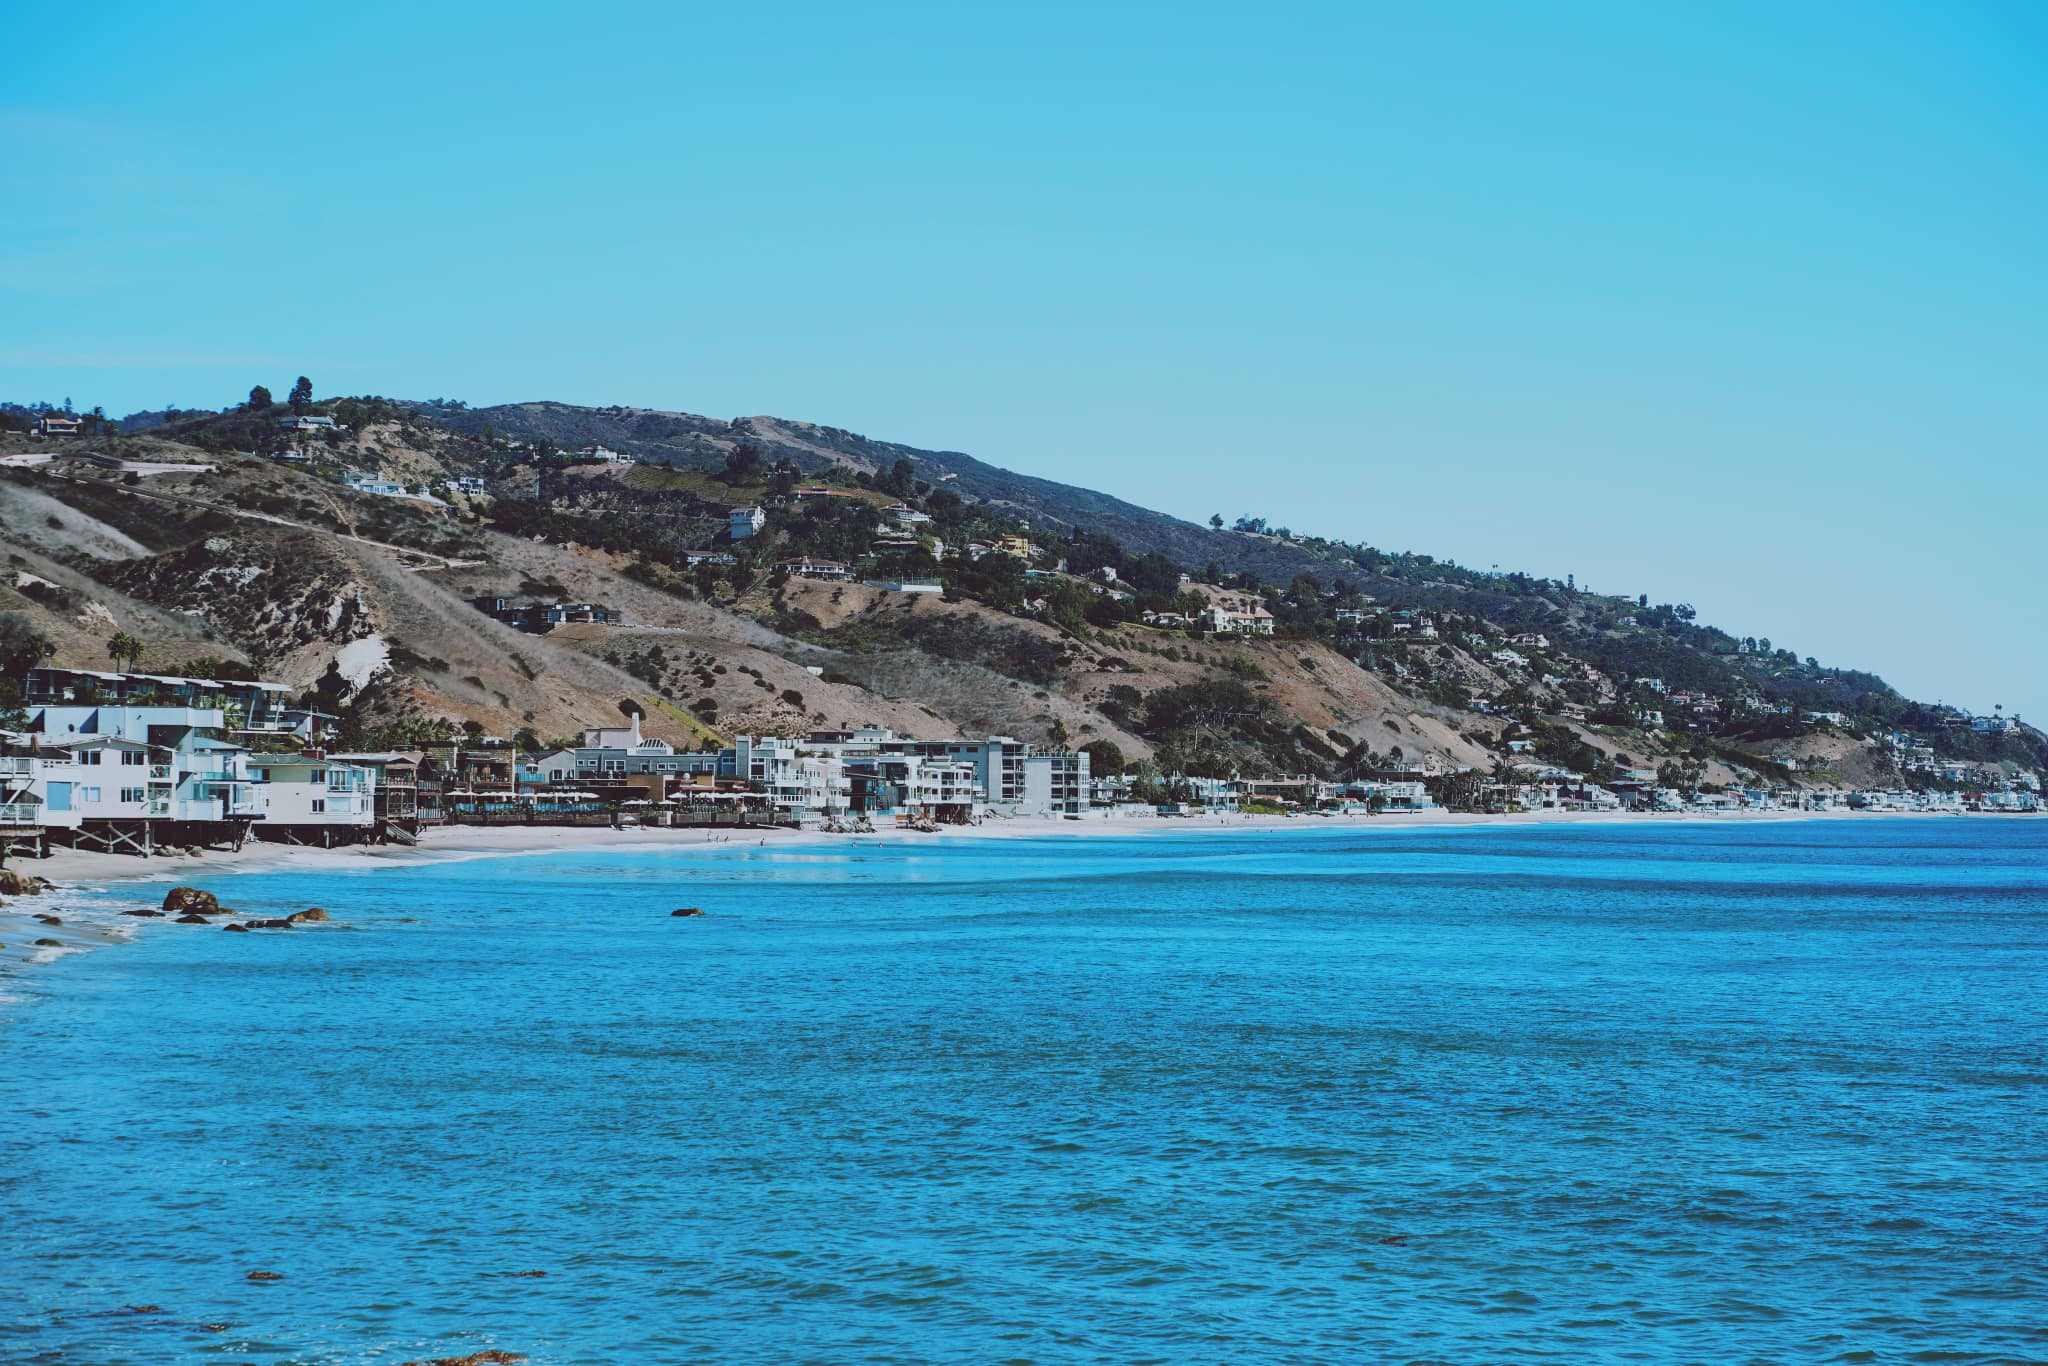 Here were some tips for a road trip going through Malibu, Venice Beach and Laguna Beach, make sure you visit some of the spots that have been mentioned!